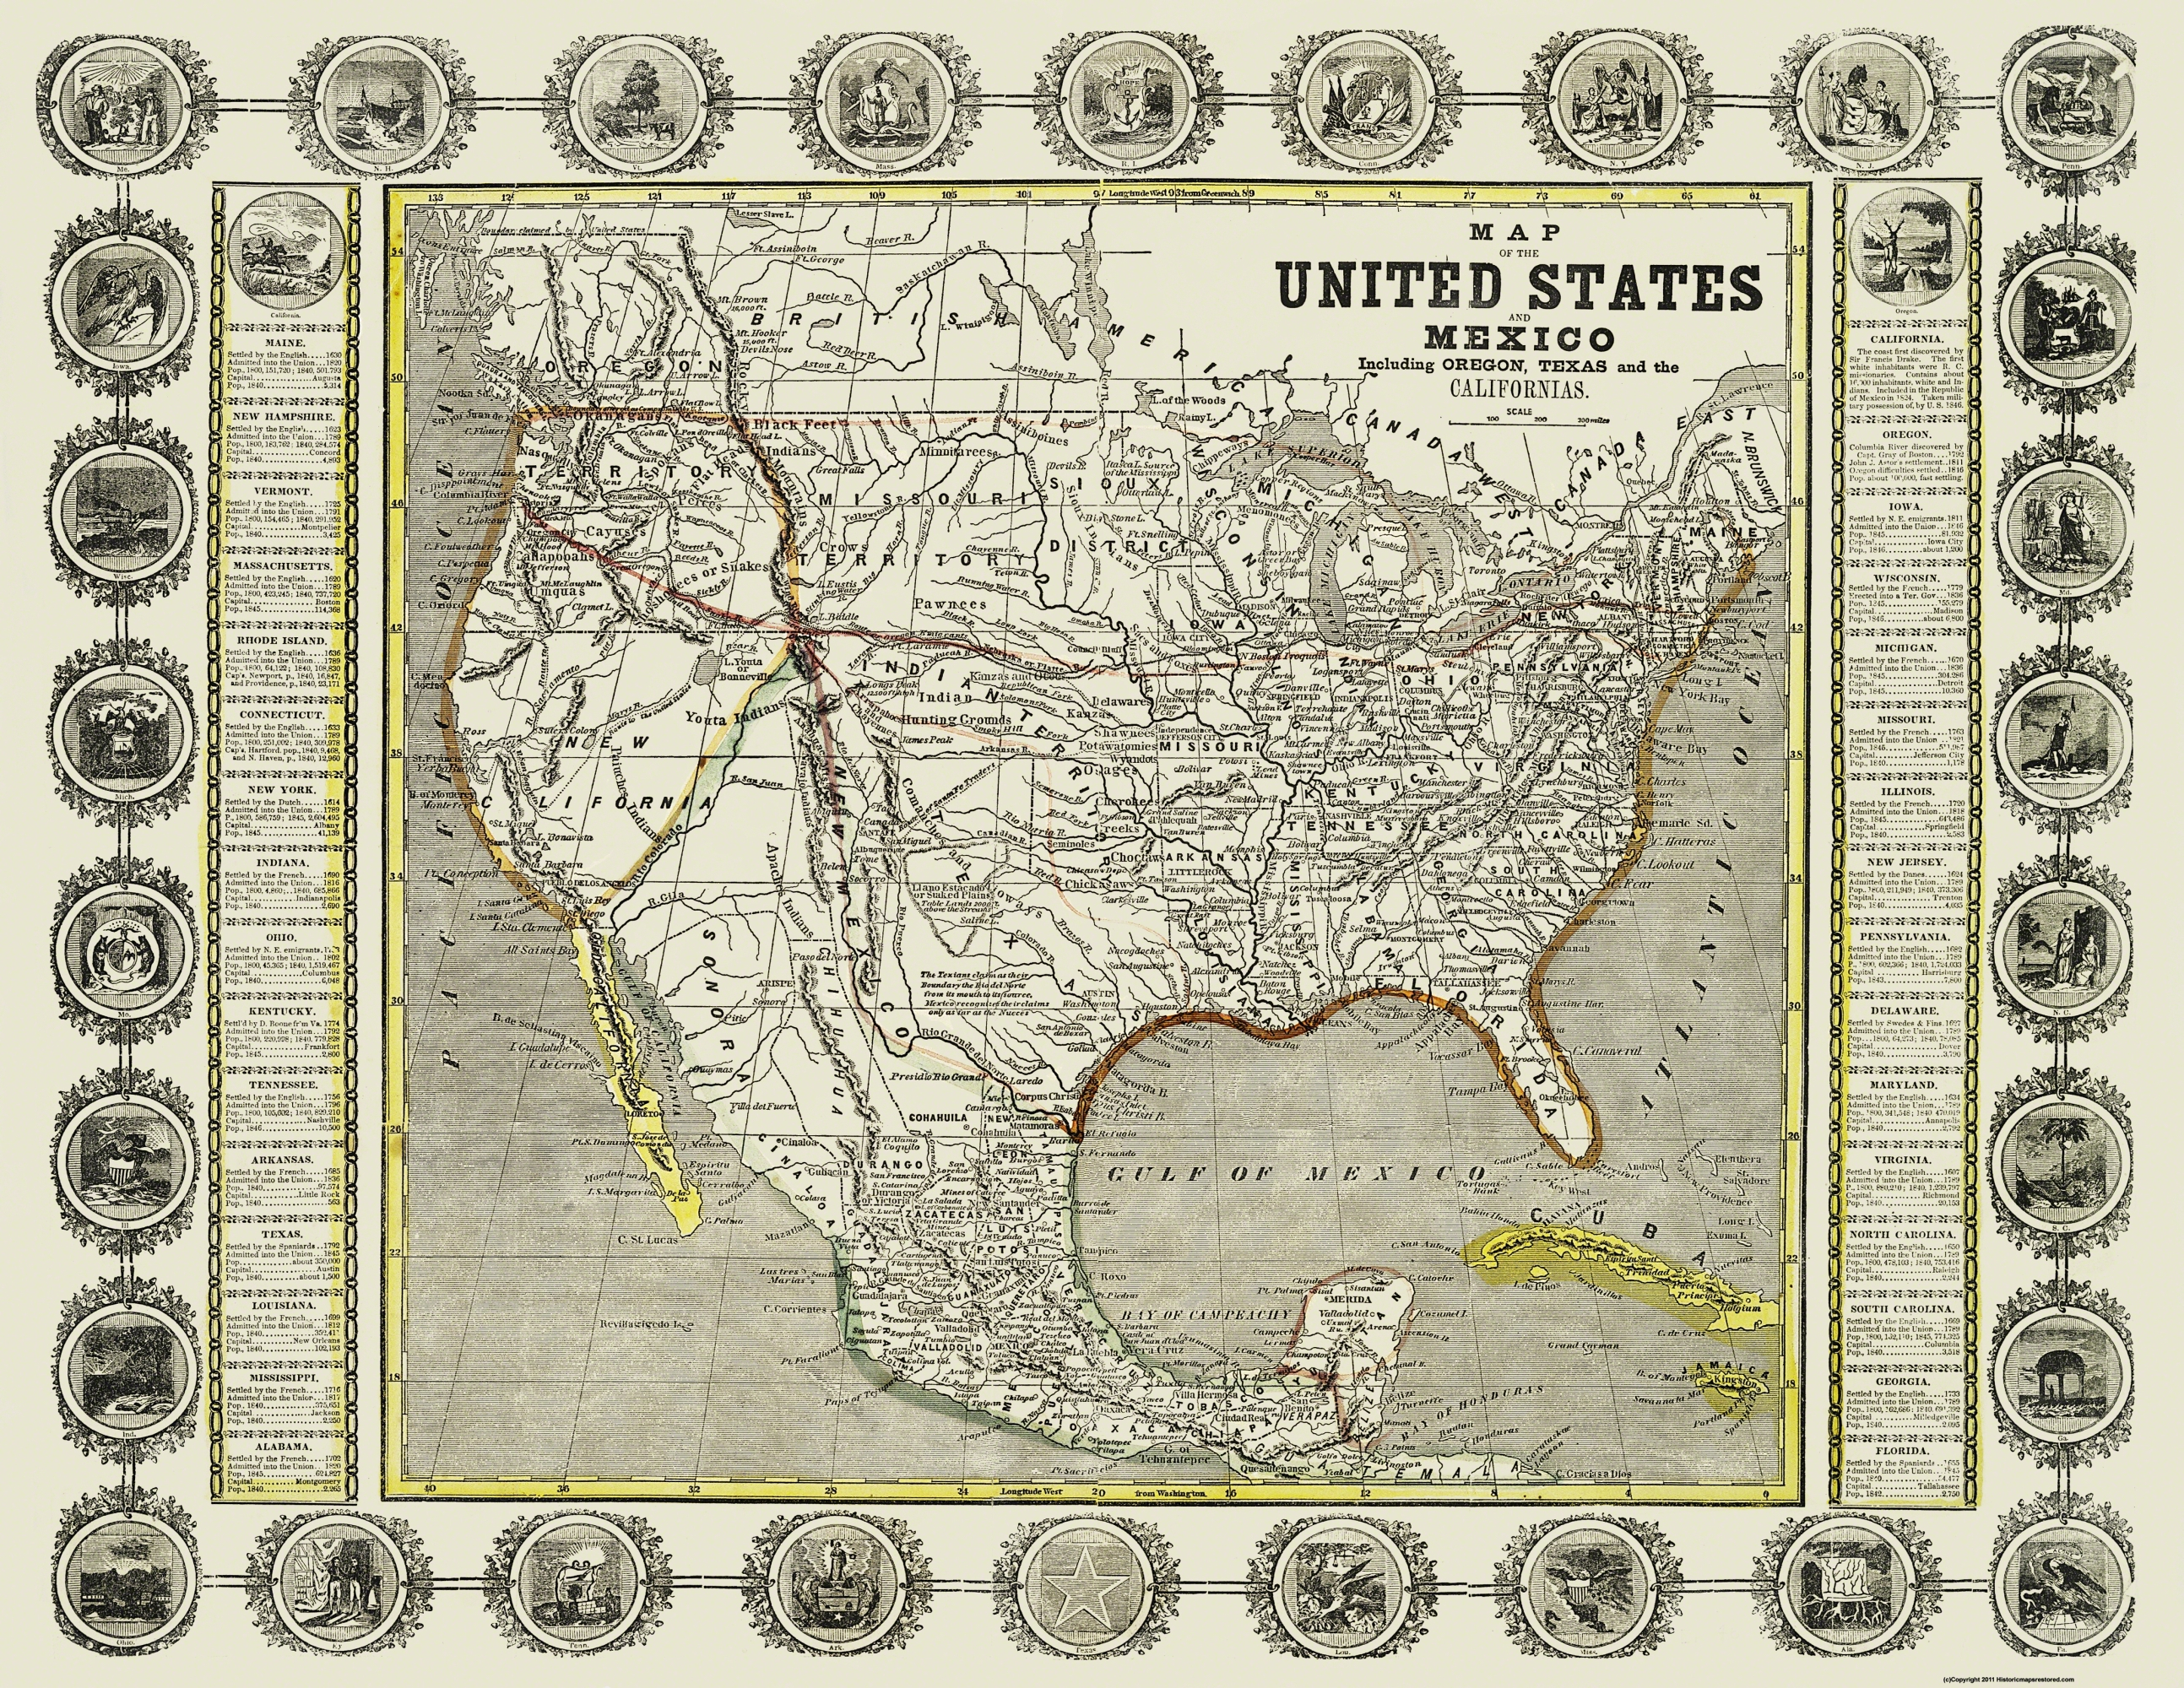 Old North America Map.Old North America Map United States And Mexico 1846